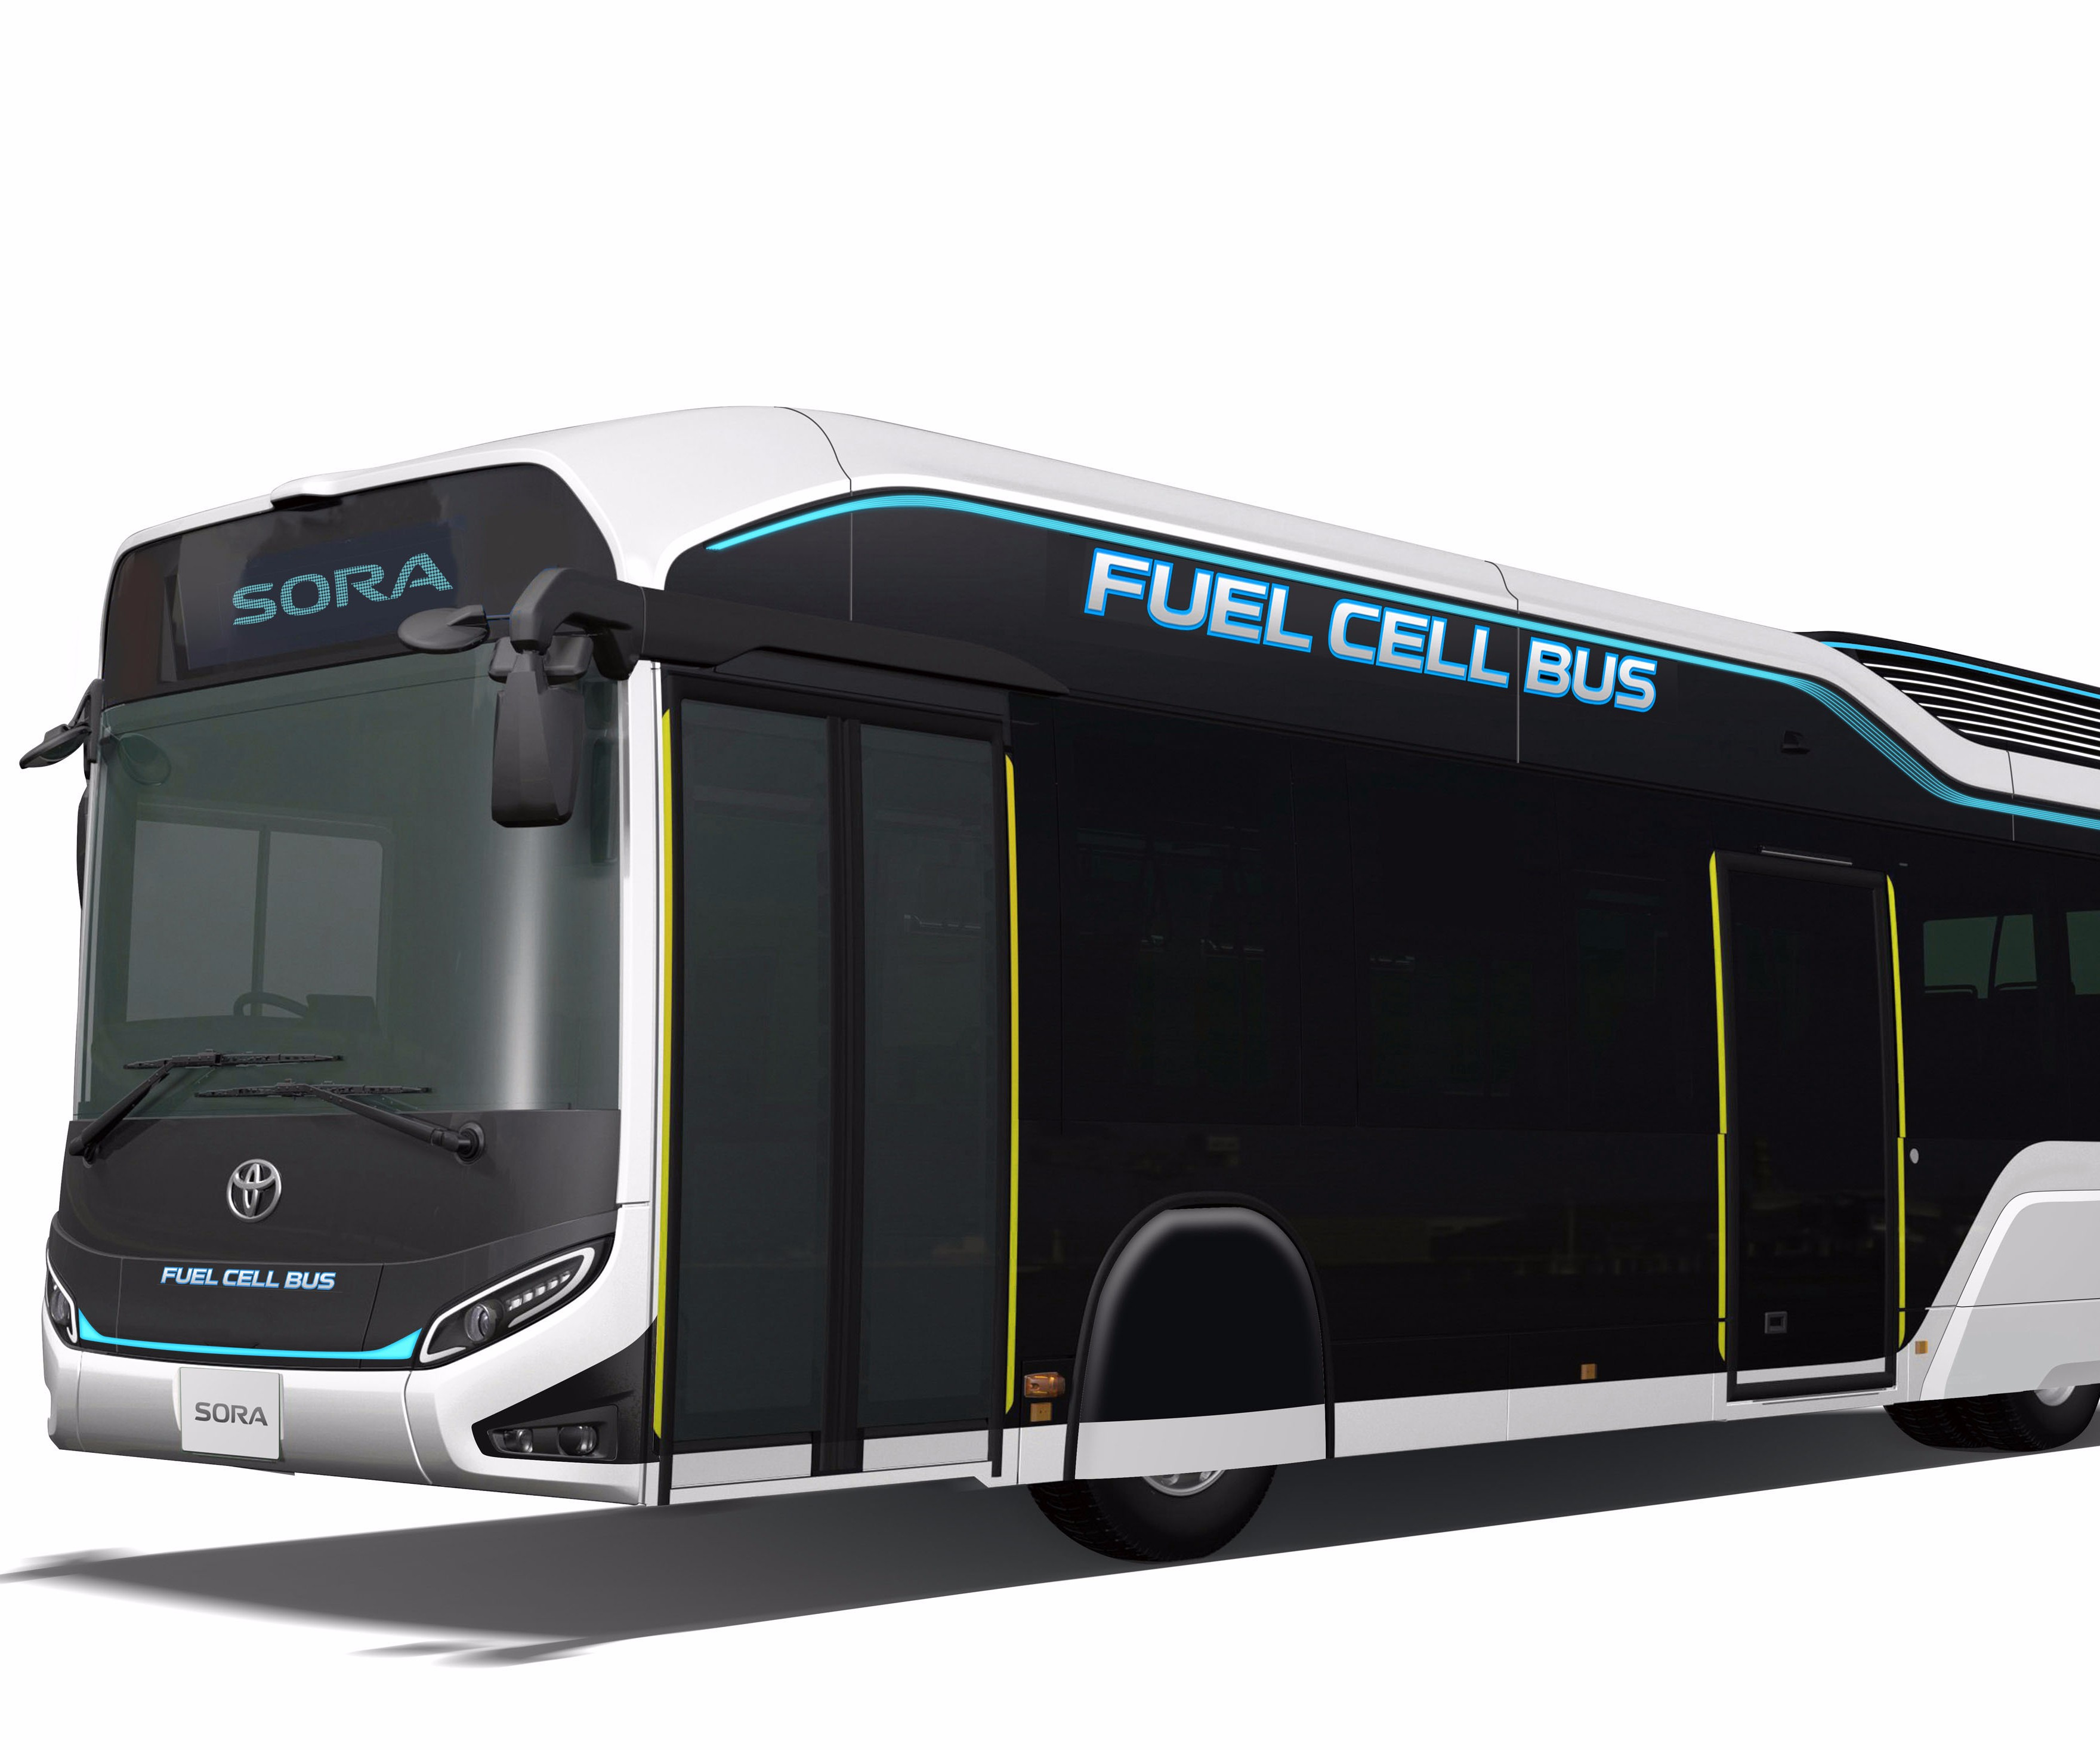 Toyota fuel cell bus featuring carbon fiber roof.